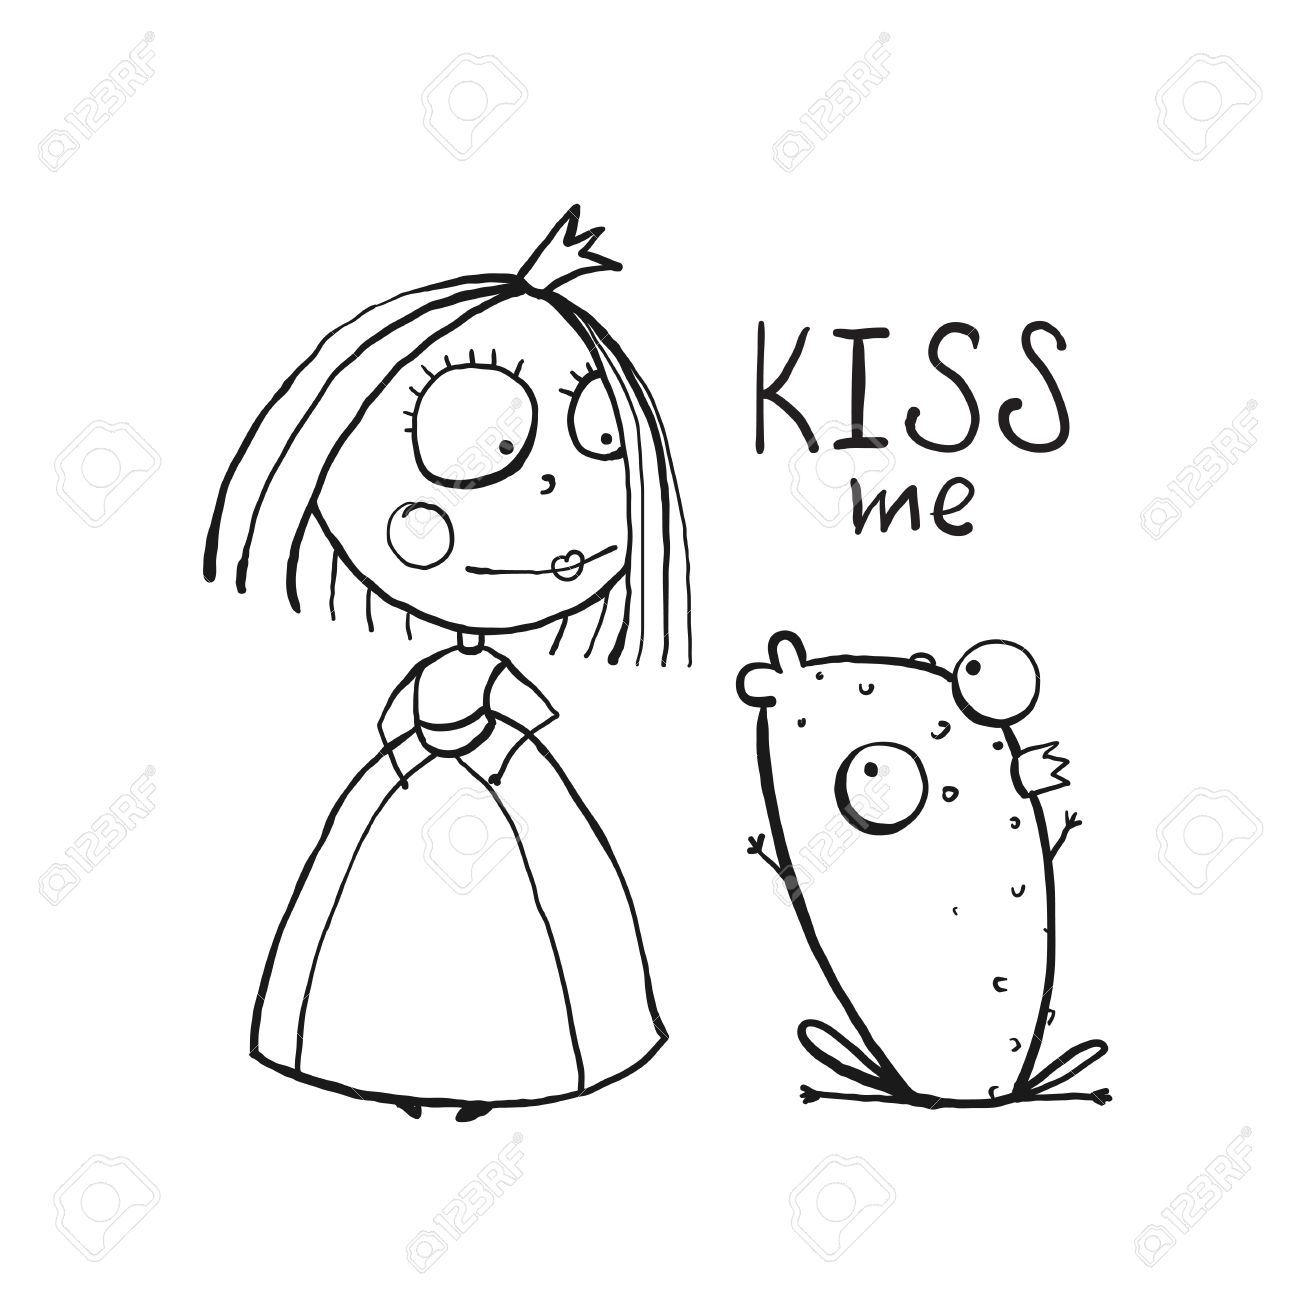 Baby Princess And Frog Asking For Kiss Coloring Page Kids Love Story Cute Fun